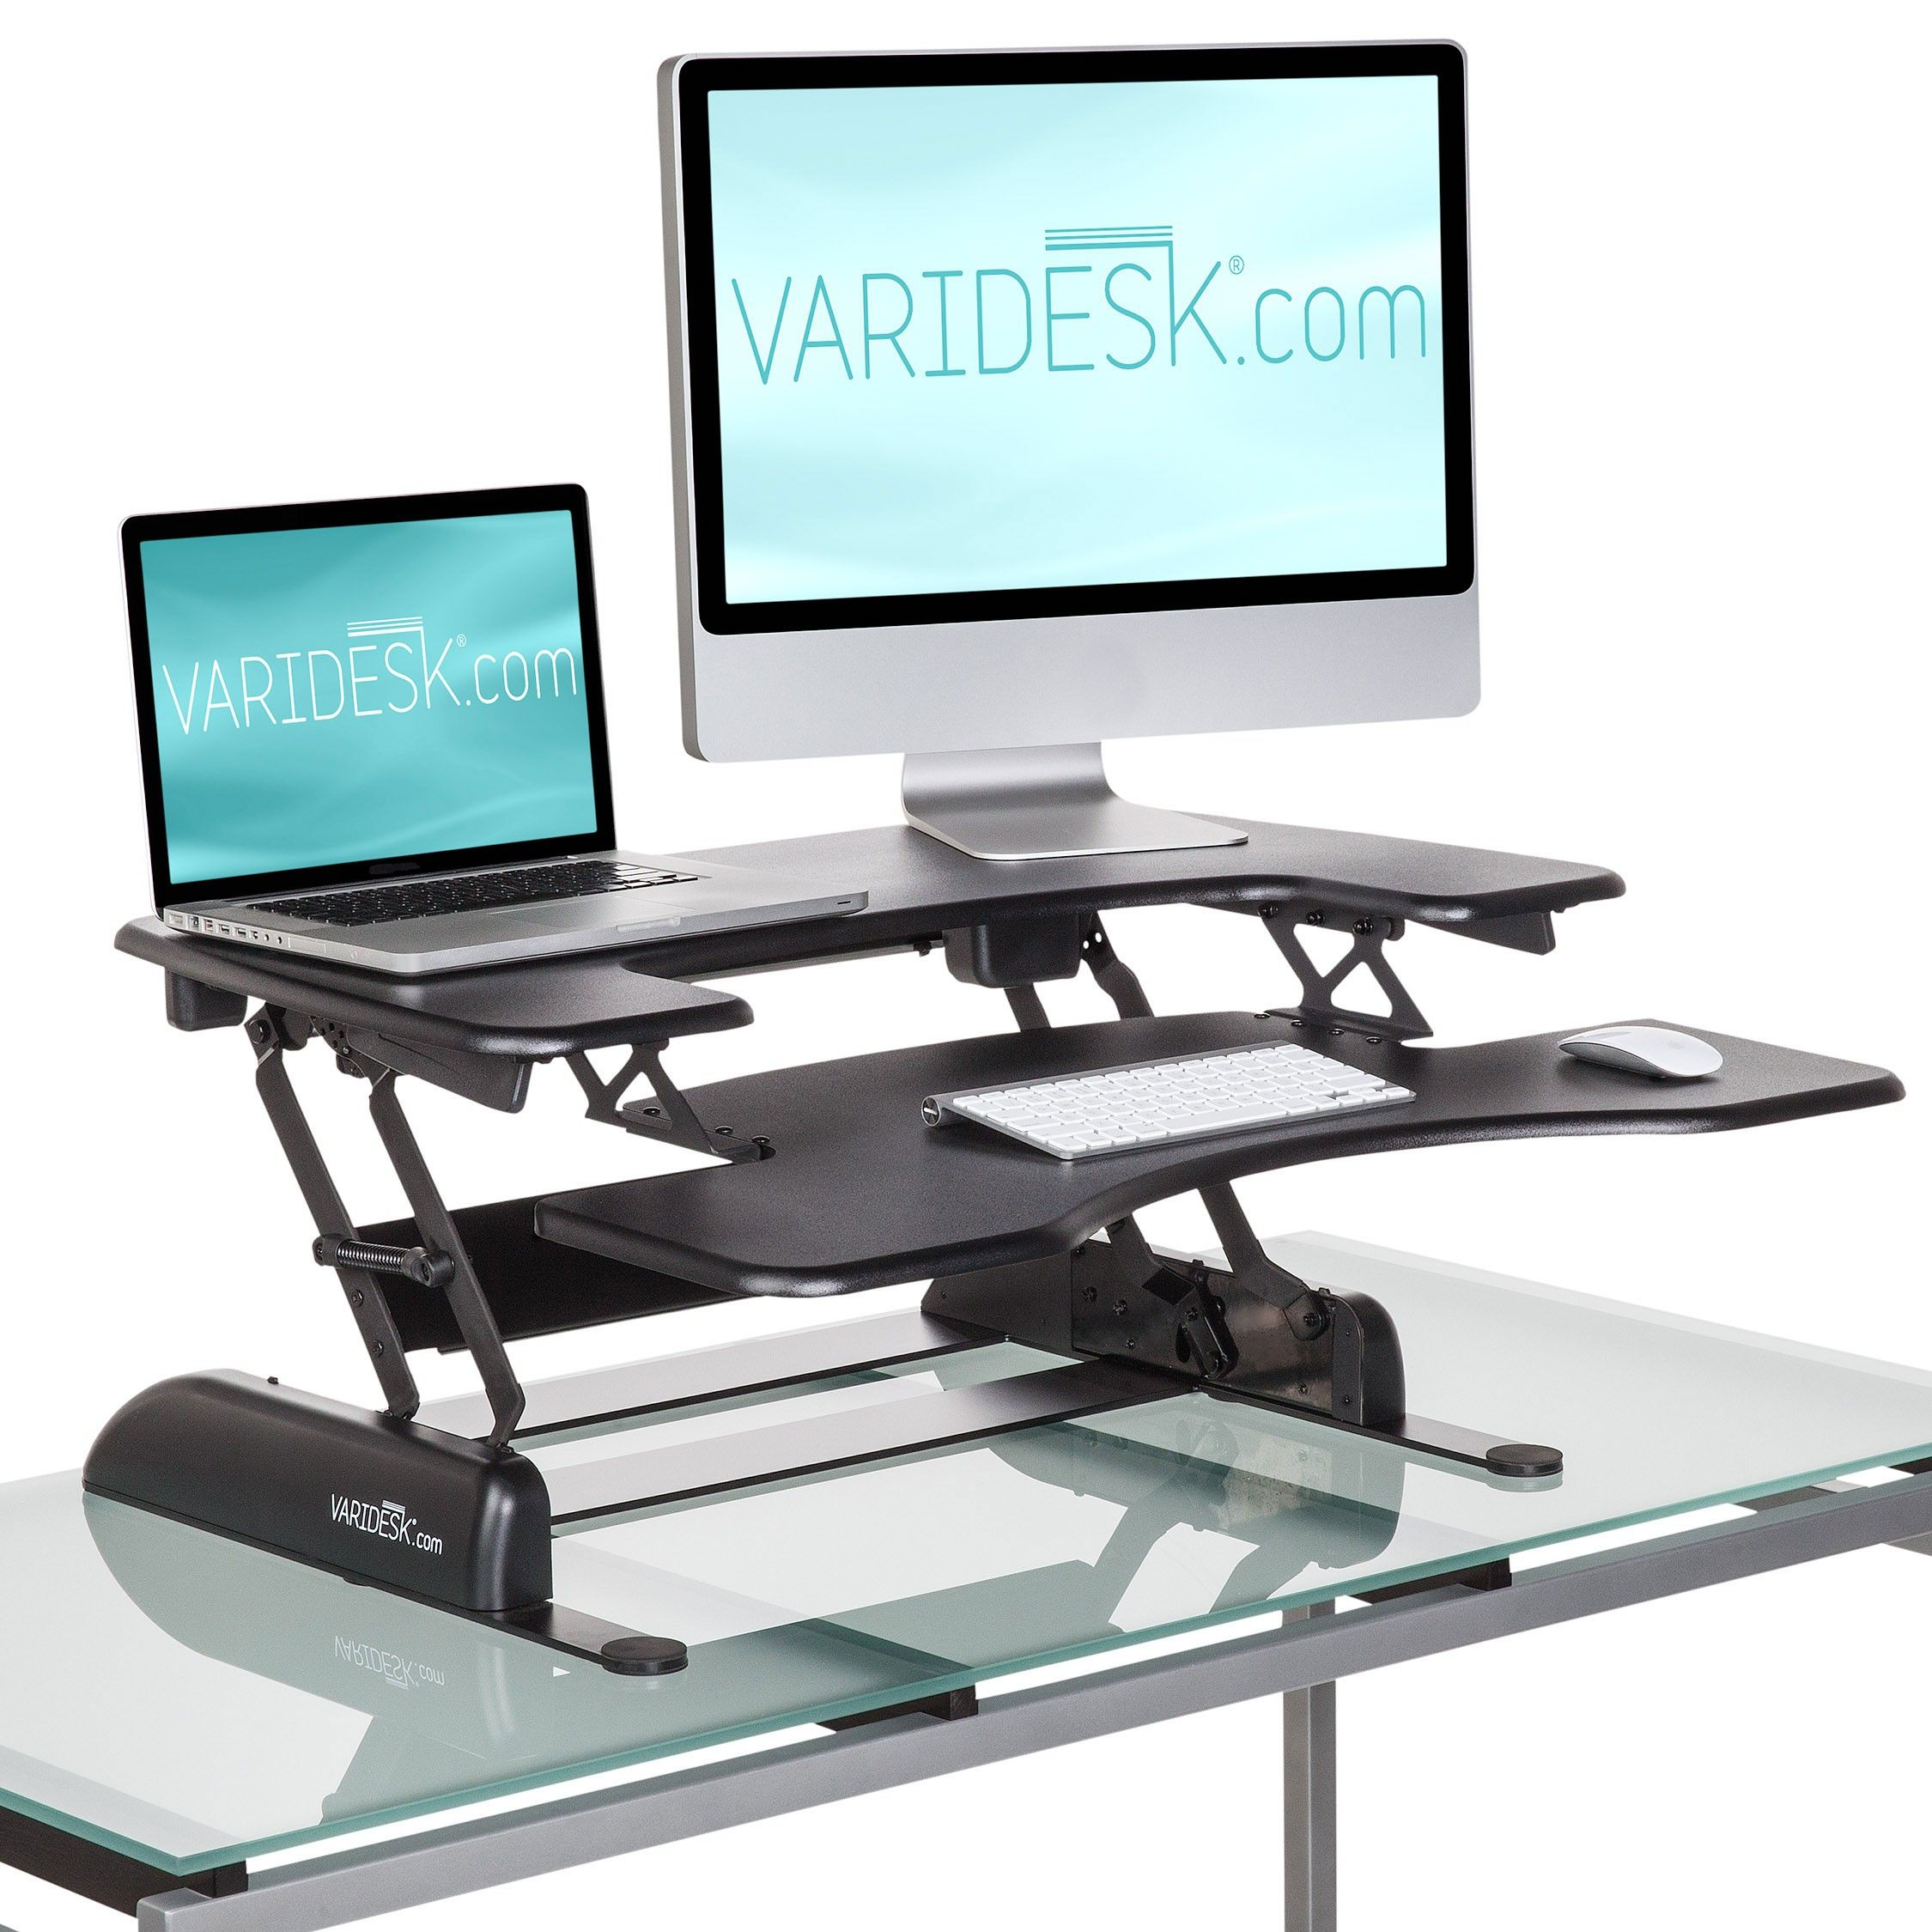 Varidesk Pro Plus Height Adjustable Standing Desk With Keyboard Tray Varidesk Adjustable Height Standing Desk Adjustable Standing Desk